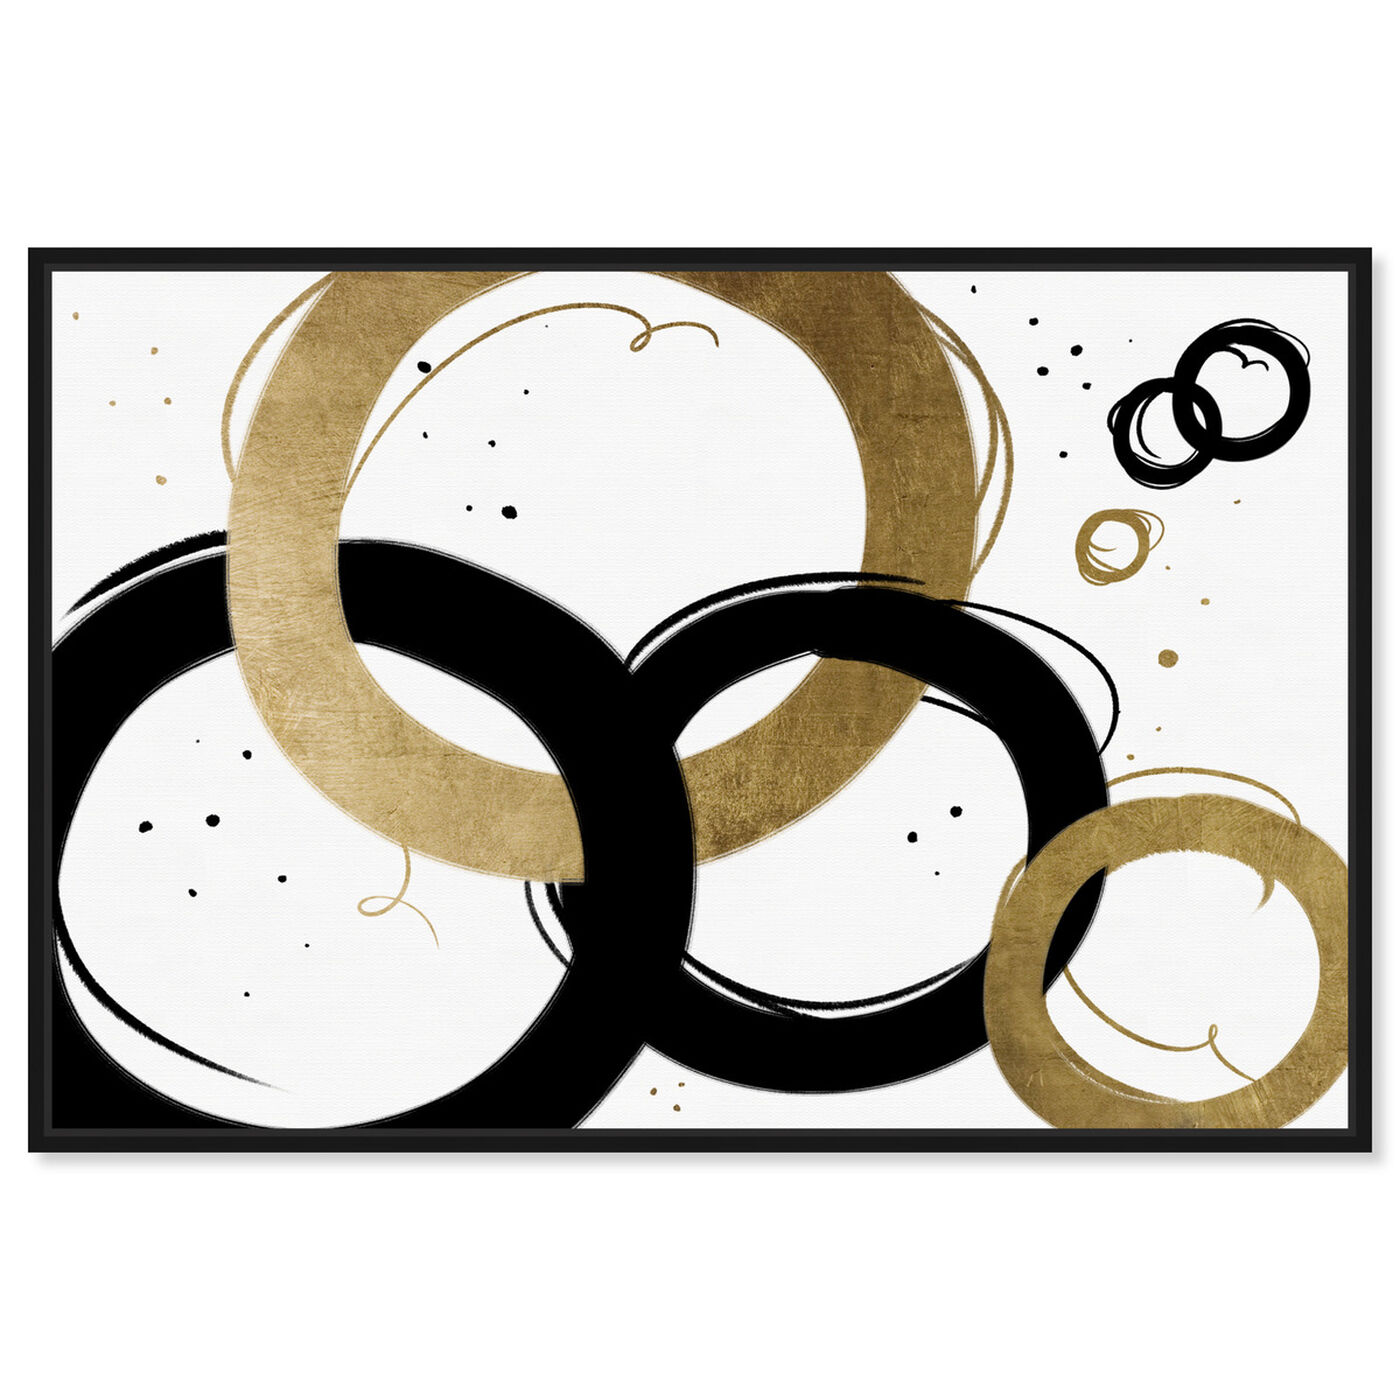 Front view of Infinite Circles featuring abstract and geometric art.